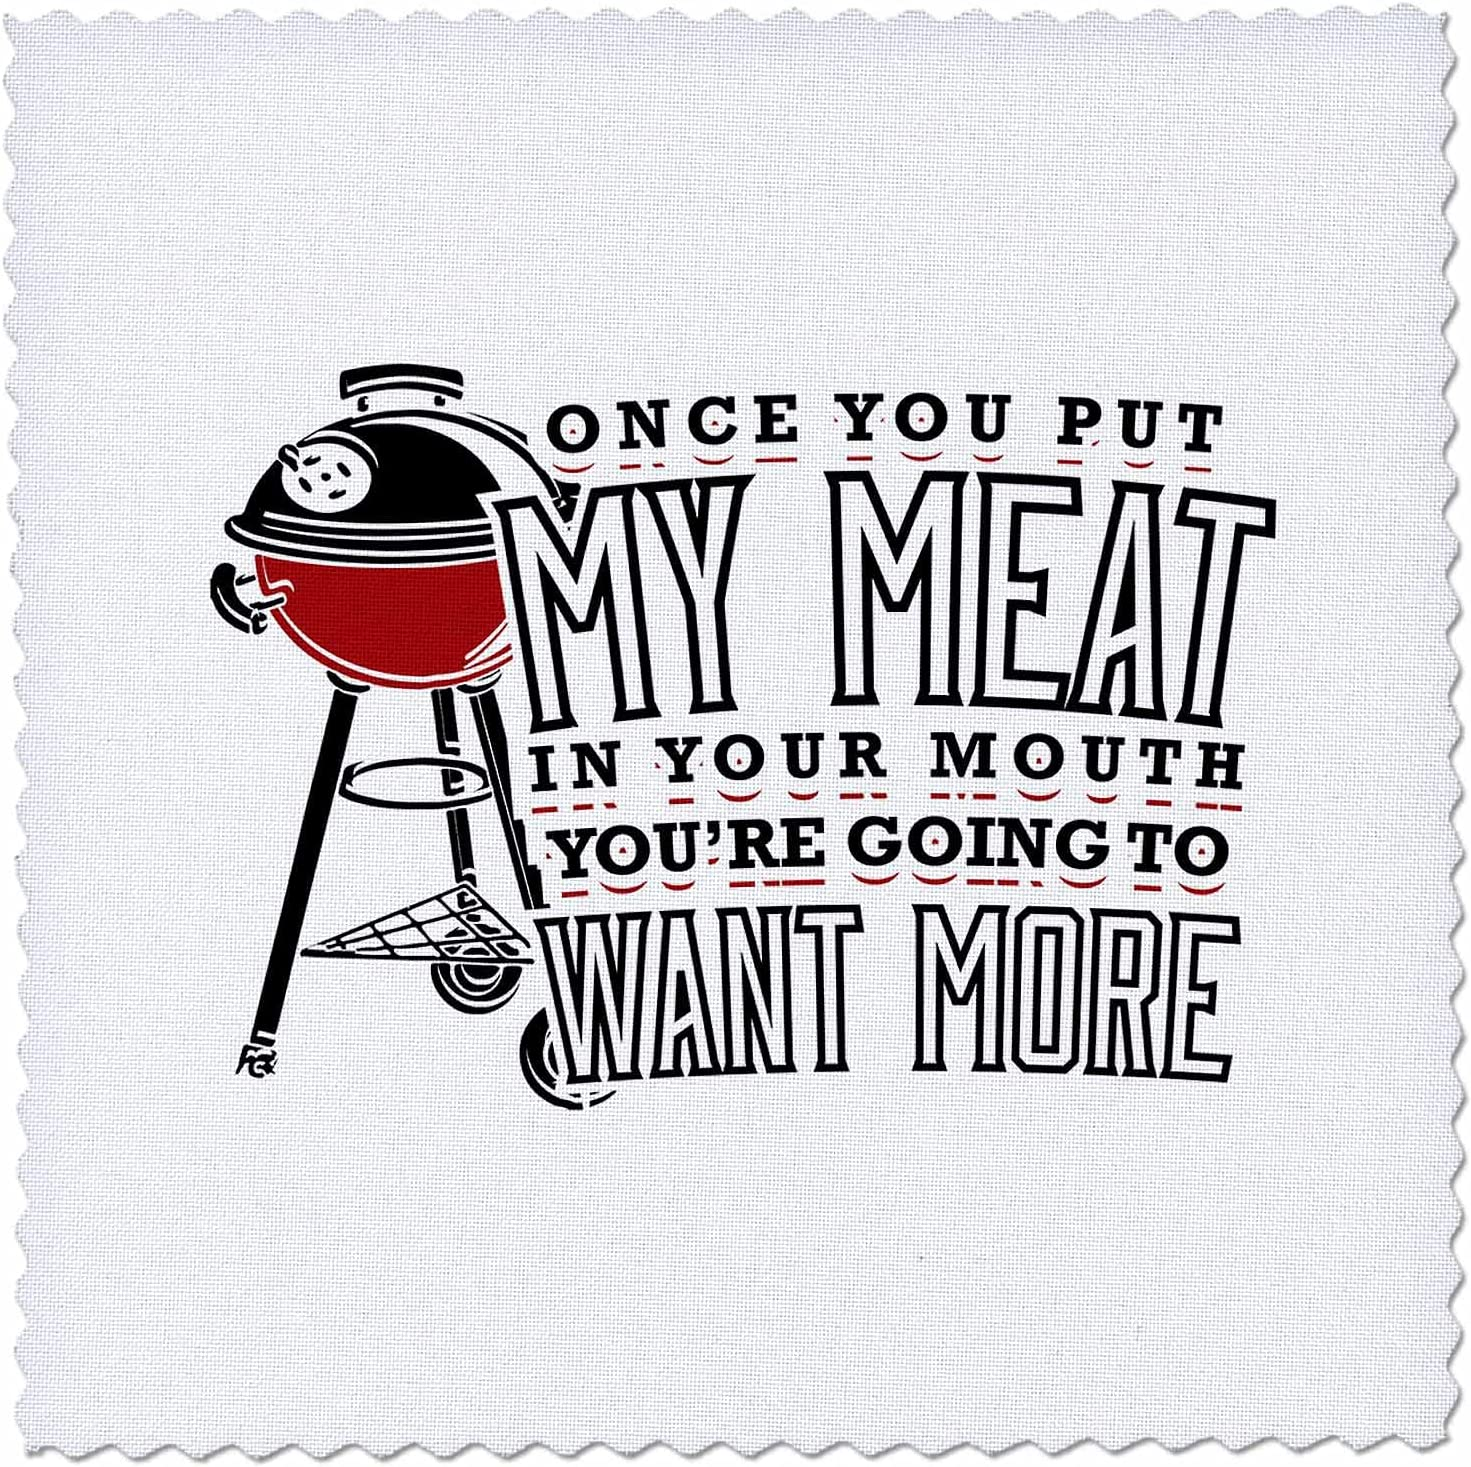 3dRose Once You Put My Max 43% OFF Meat in BBQ Want Your Max 41% OFF Will More Mouth